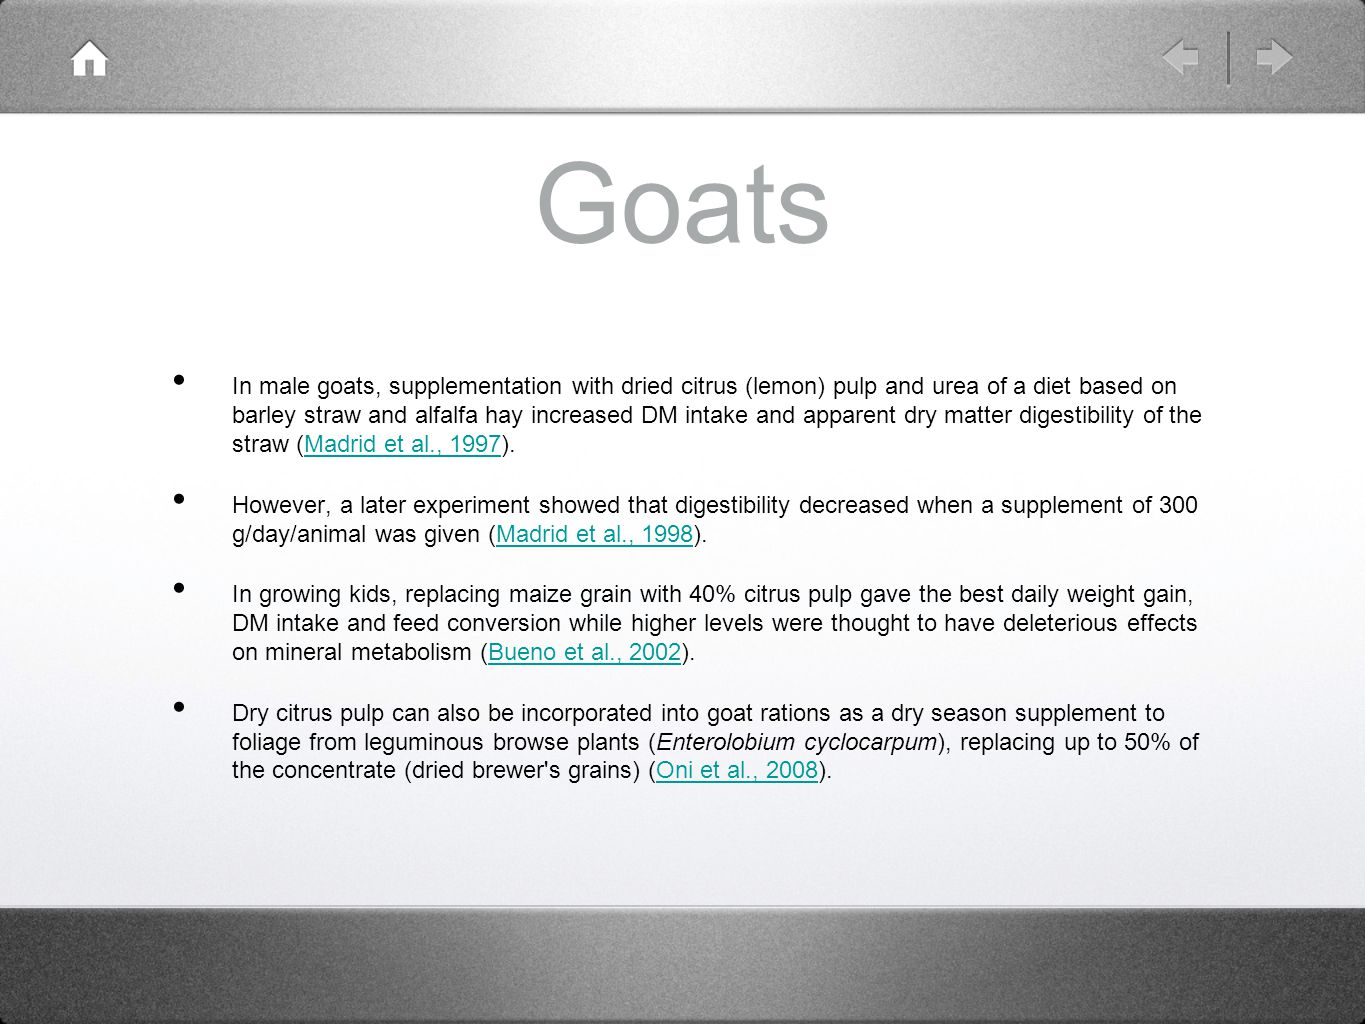 Goats In male goats, supplementation with dried citrus (lemon) pulp and urea of a diet based on barley straw and alfalfa hay increased DM intake and a